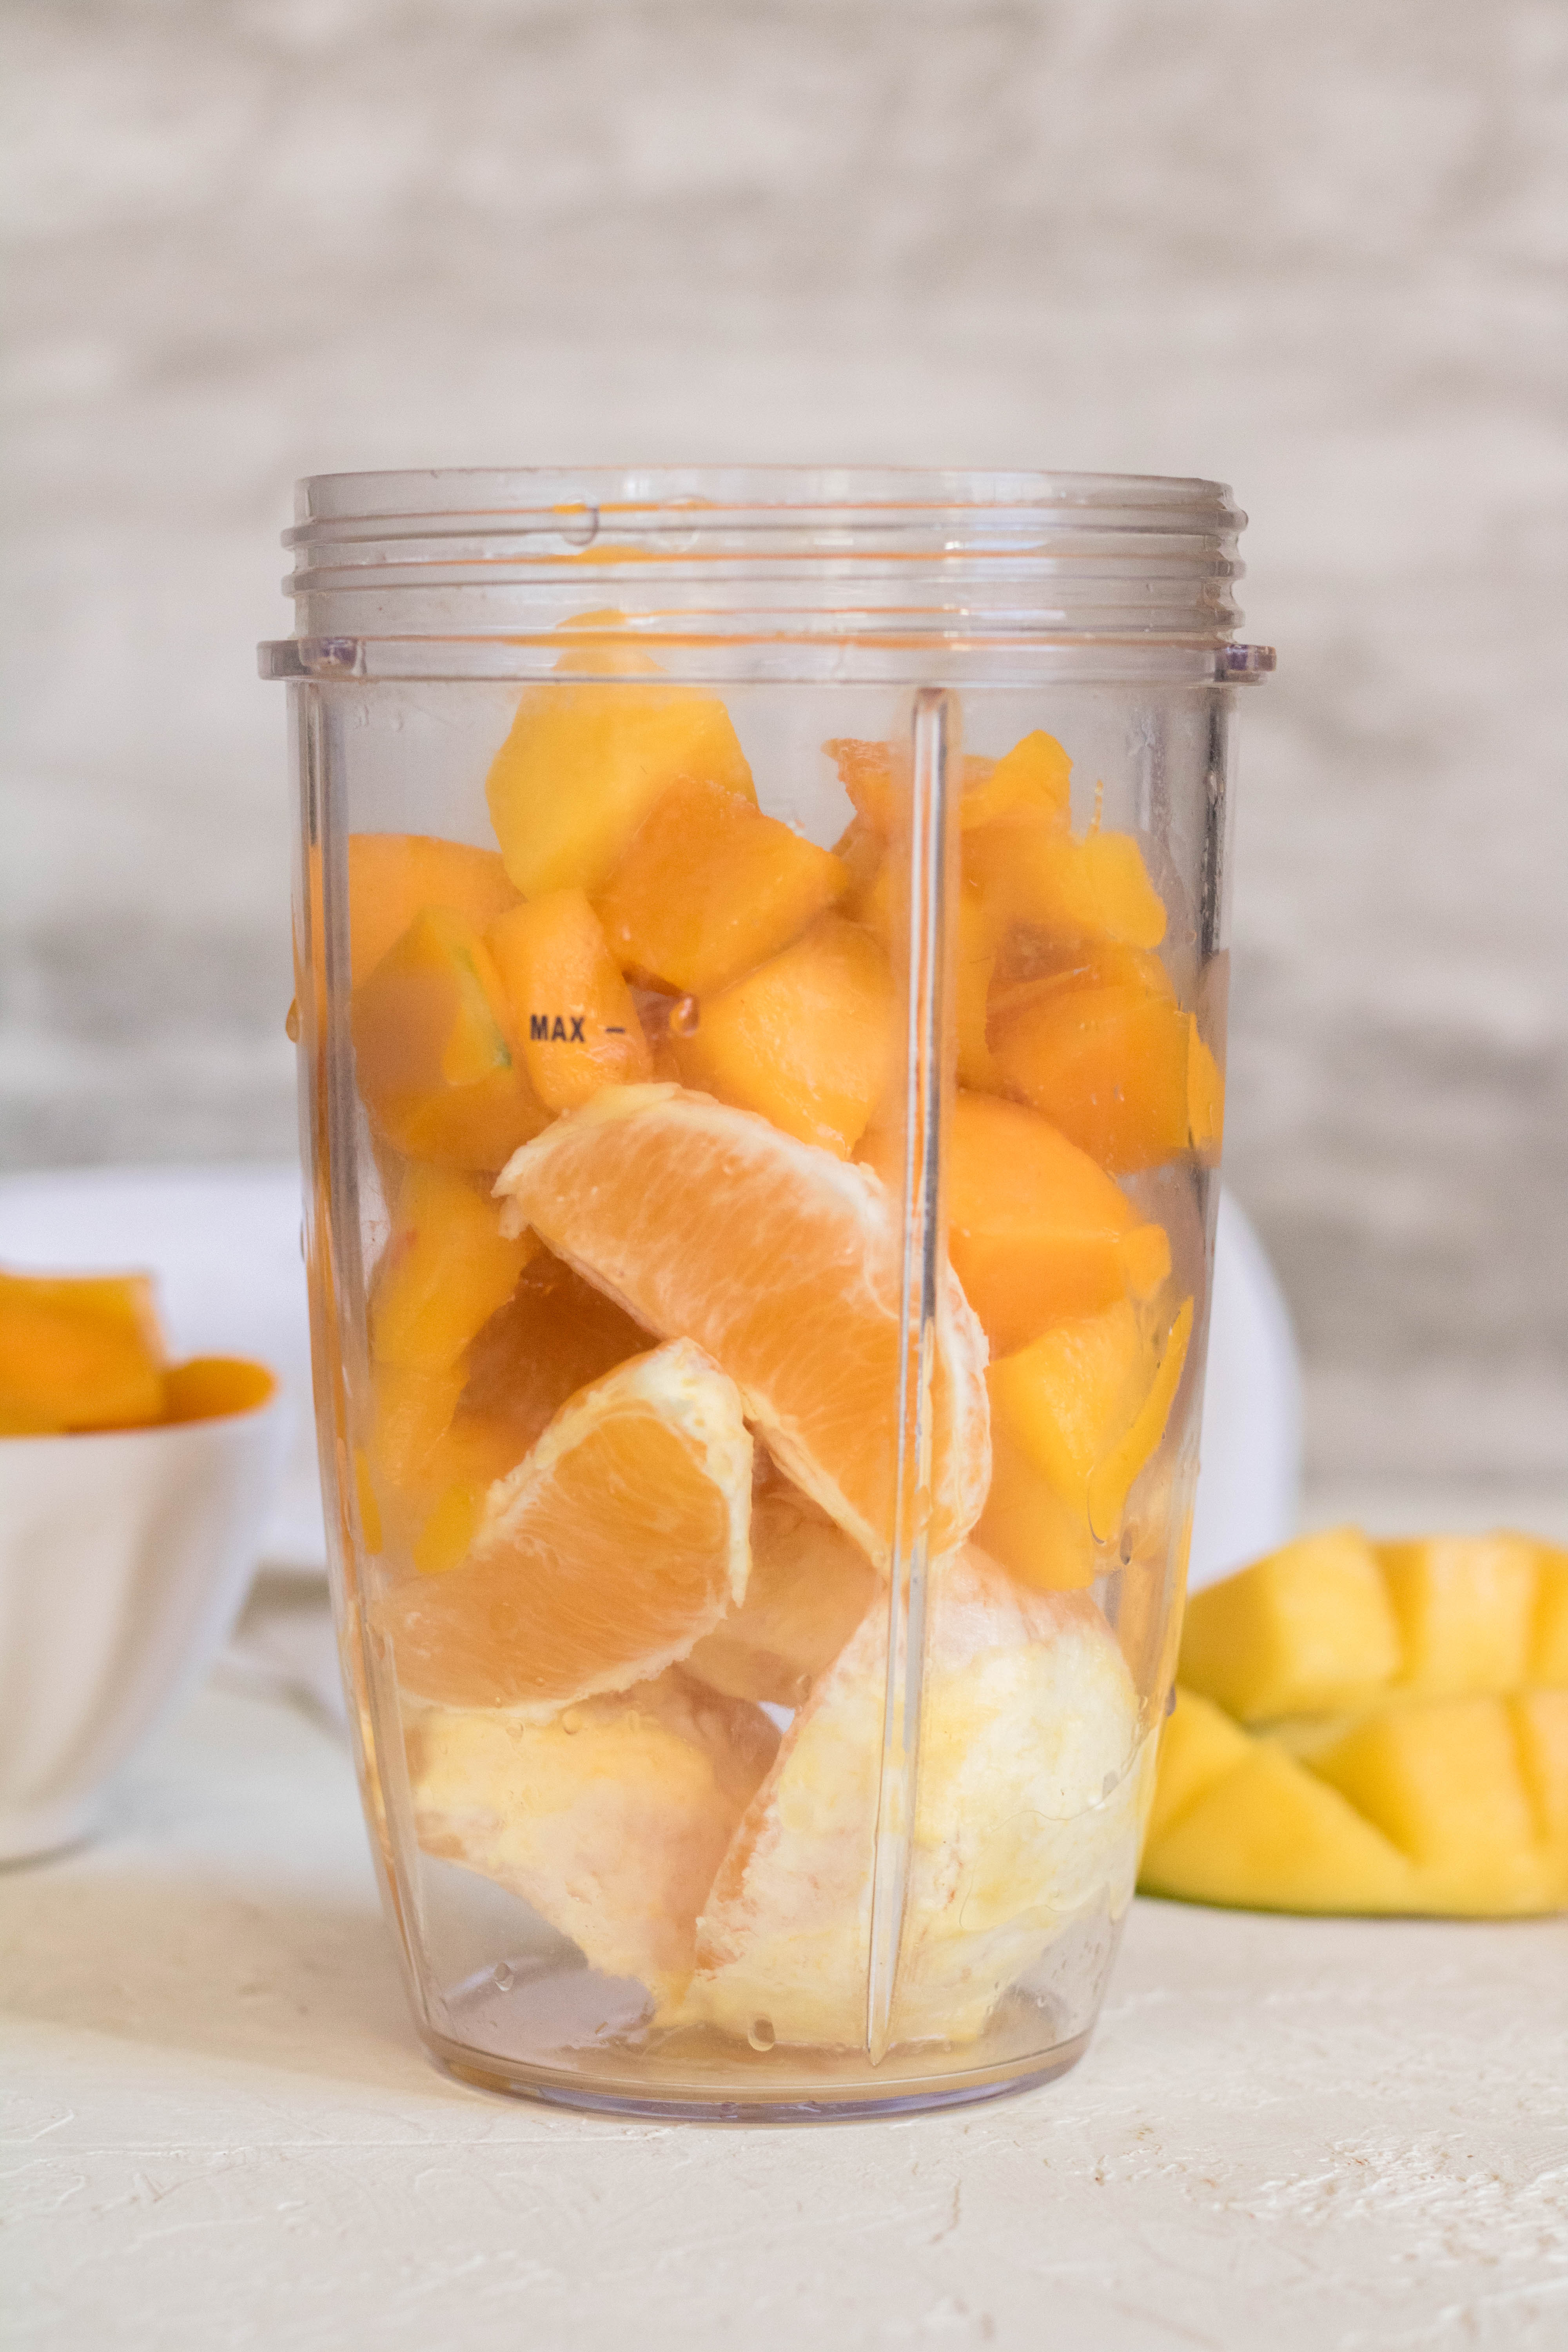 Ingredients of the mango orange smoothie in blender cup